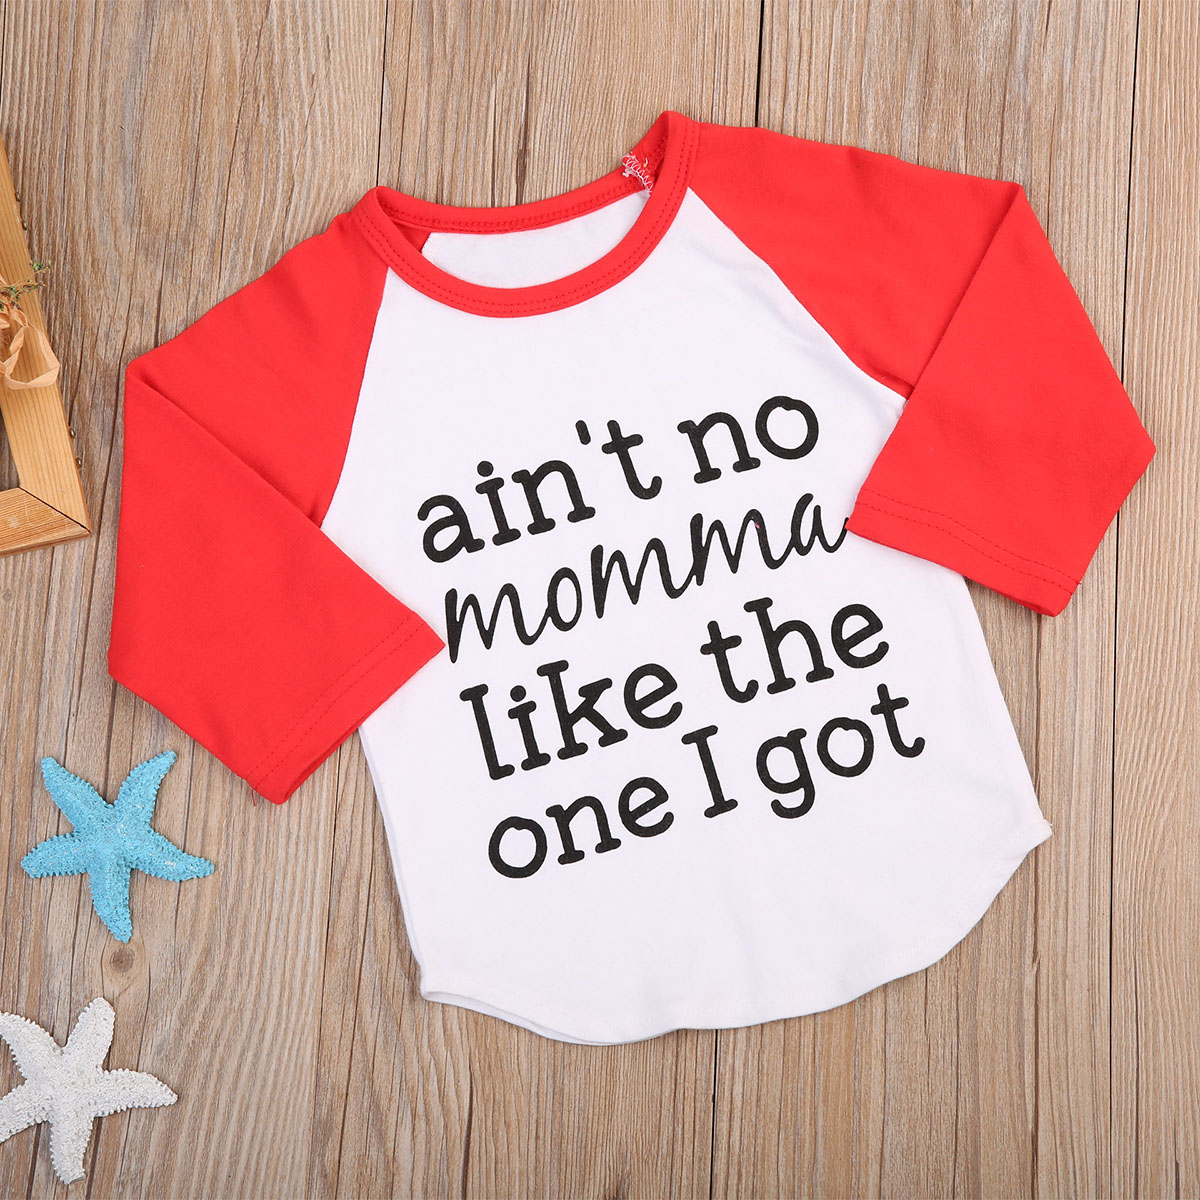 New-Fashion-T-shirts-Newborn-Infant-Kids-Baby-Boy-Tops-Cotton-Long-Sleeve-Letter-Print-Infant-Boys-Loose-Clothes-T-shirt-Tops-5